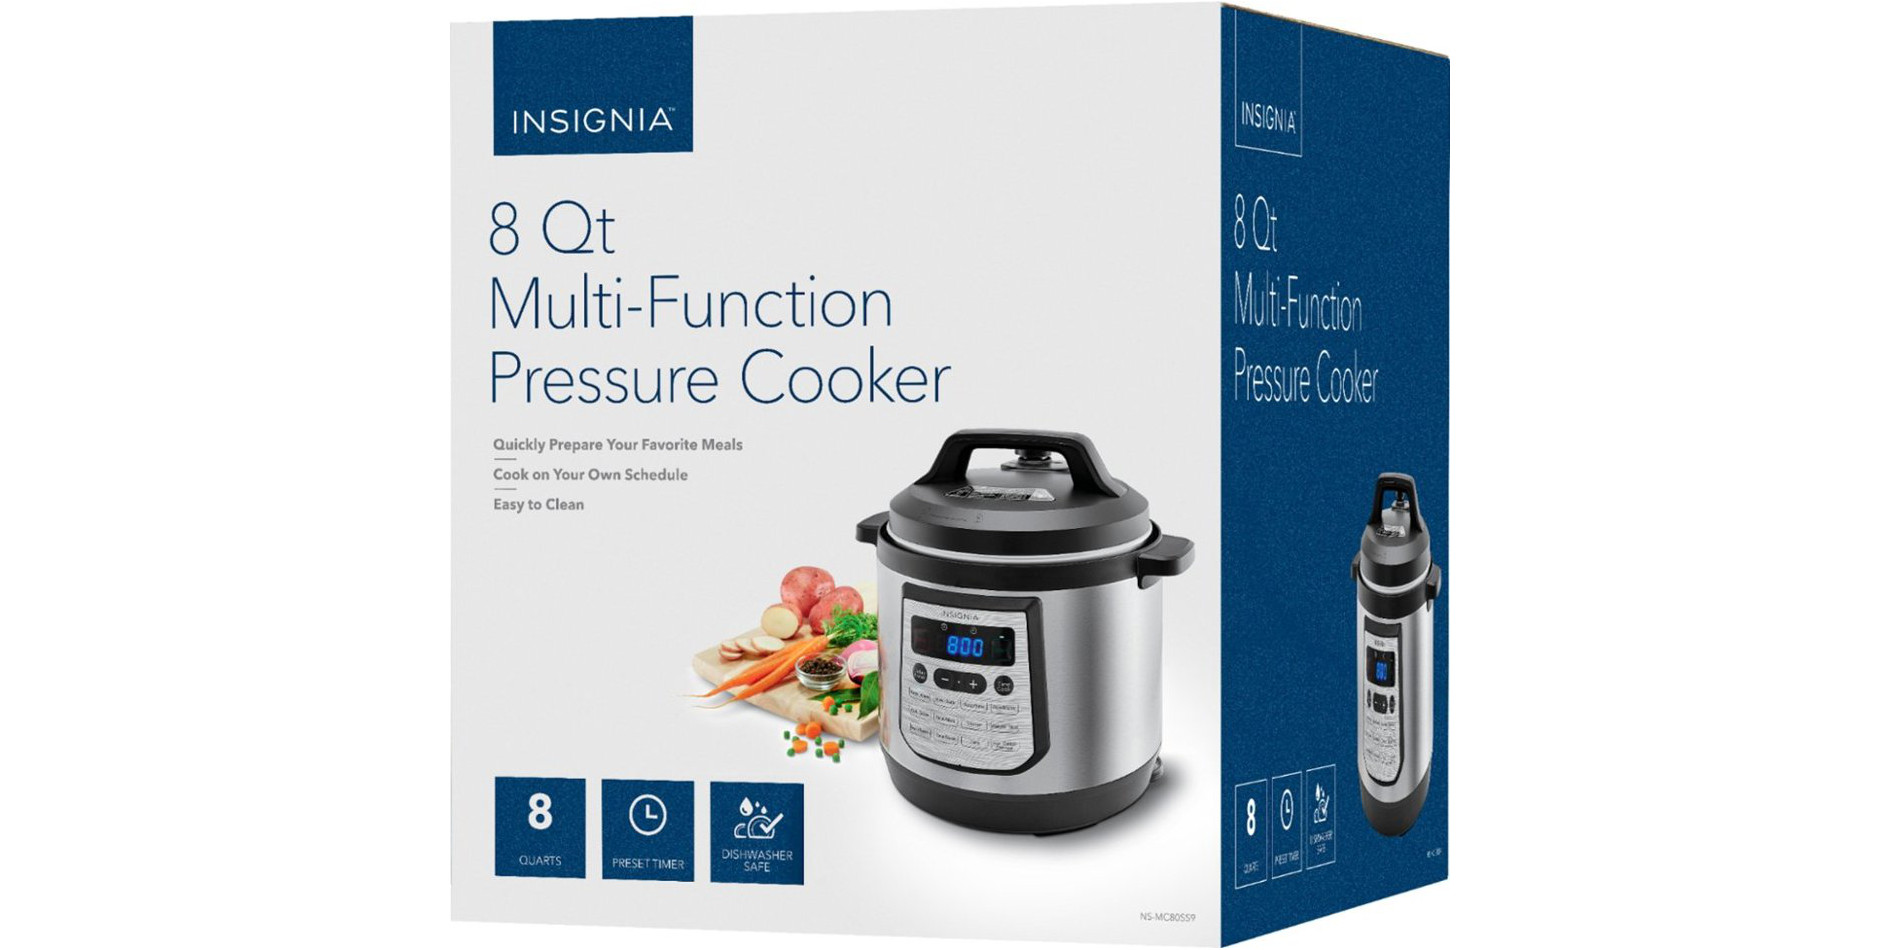 Prep meats, desserts and more in this 8-Qt. multi cooker for $40 (Reg. $80+) - 9to5Toys